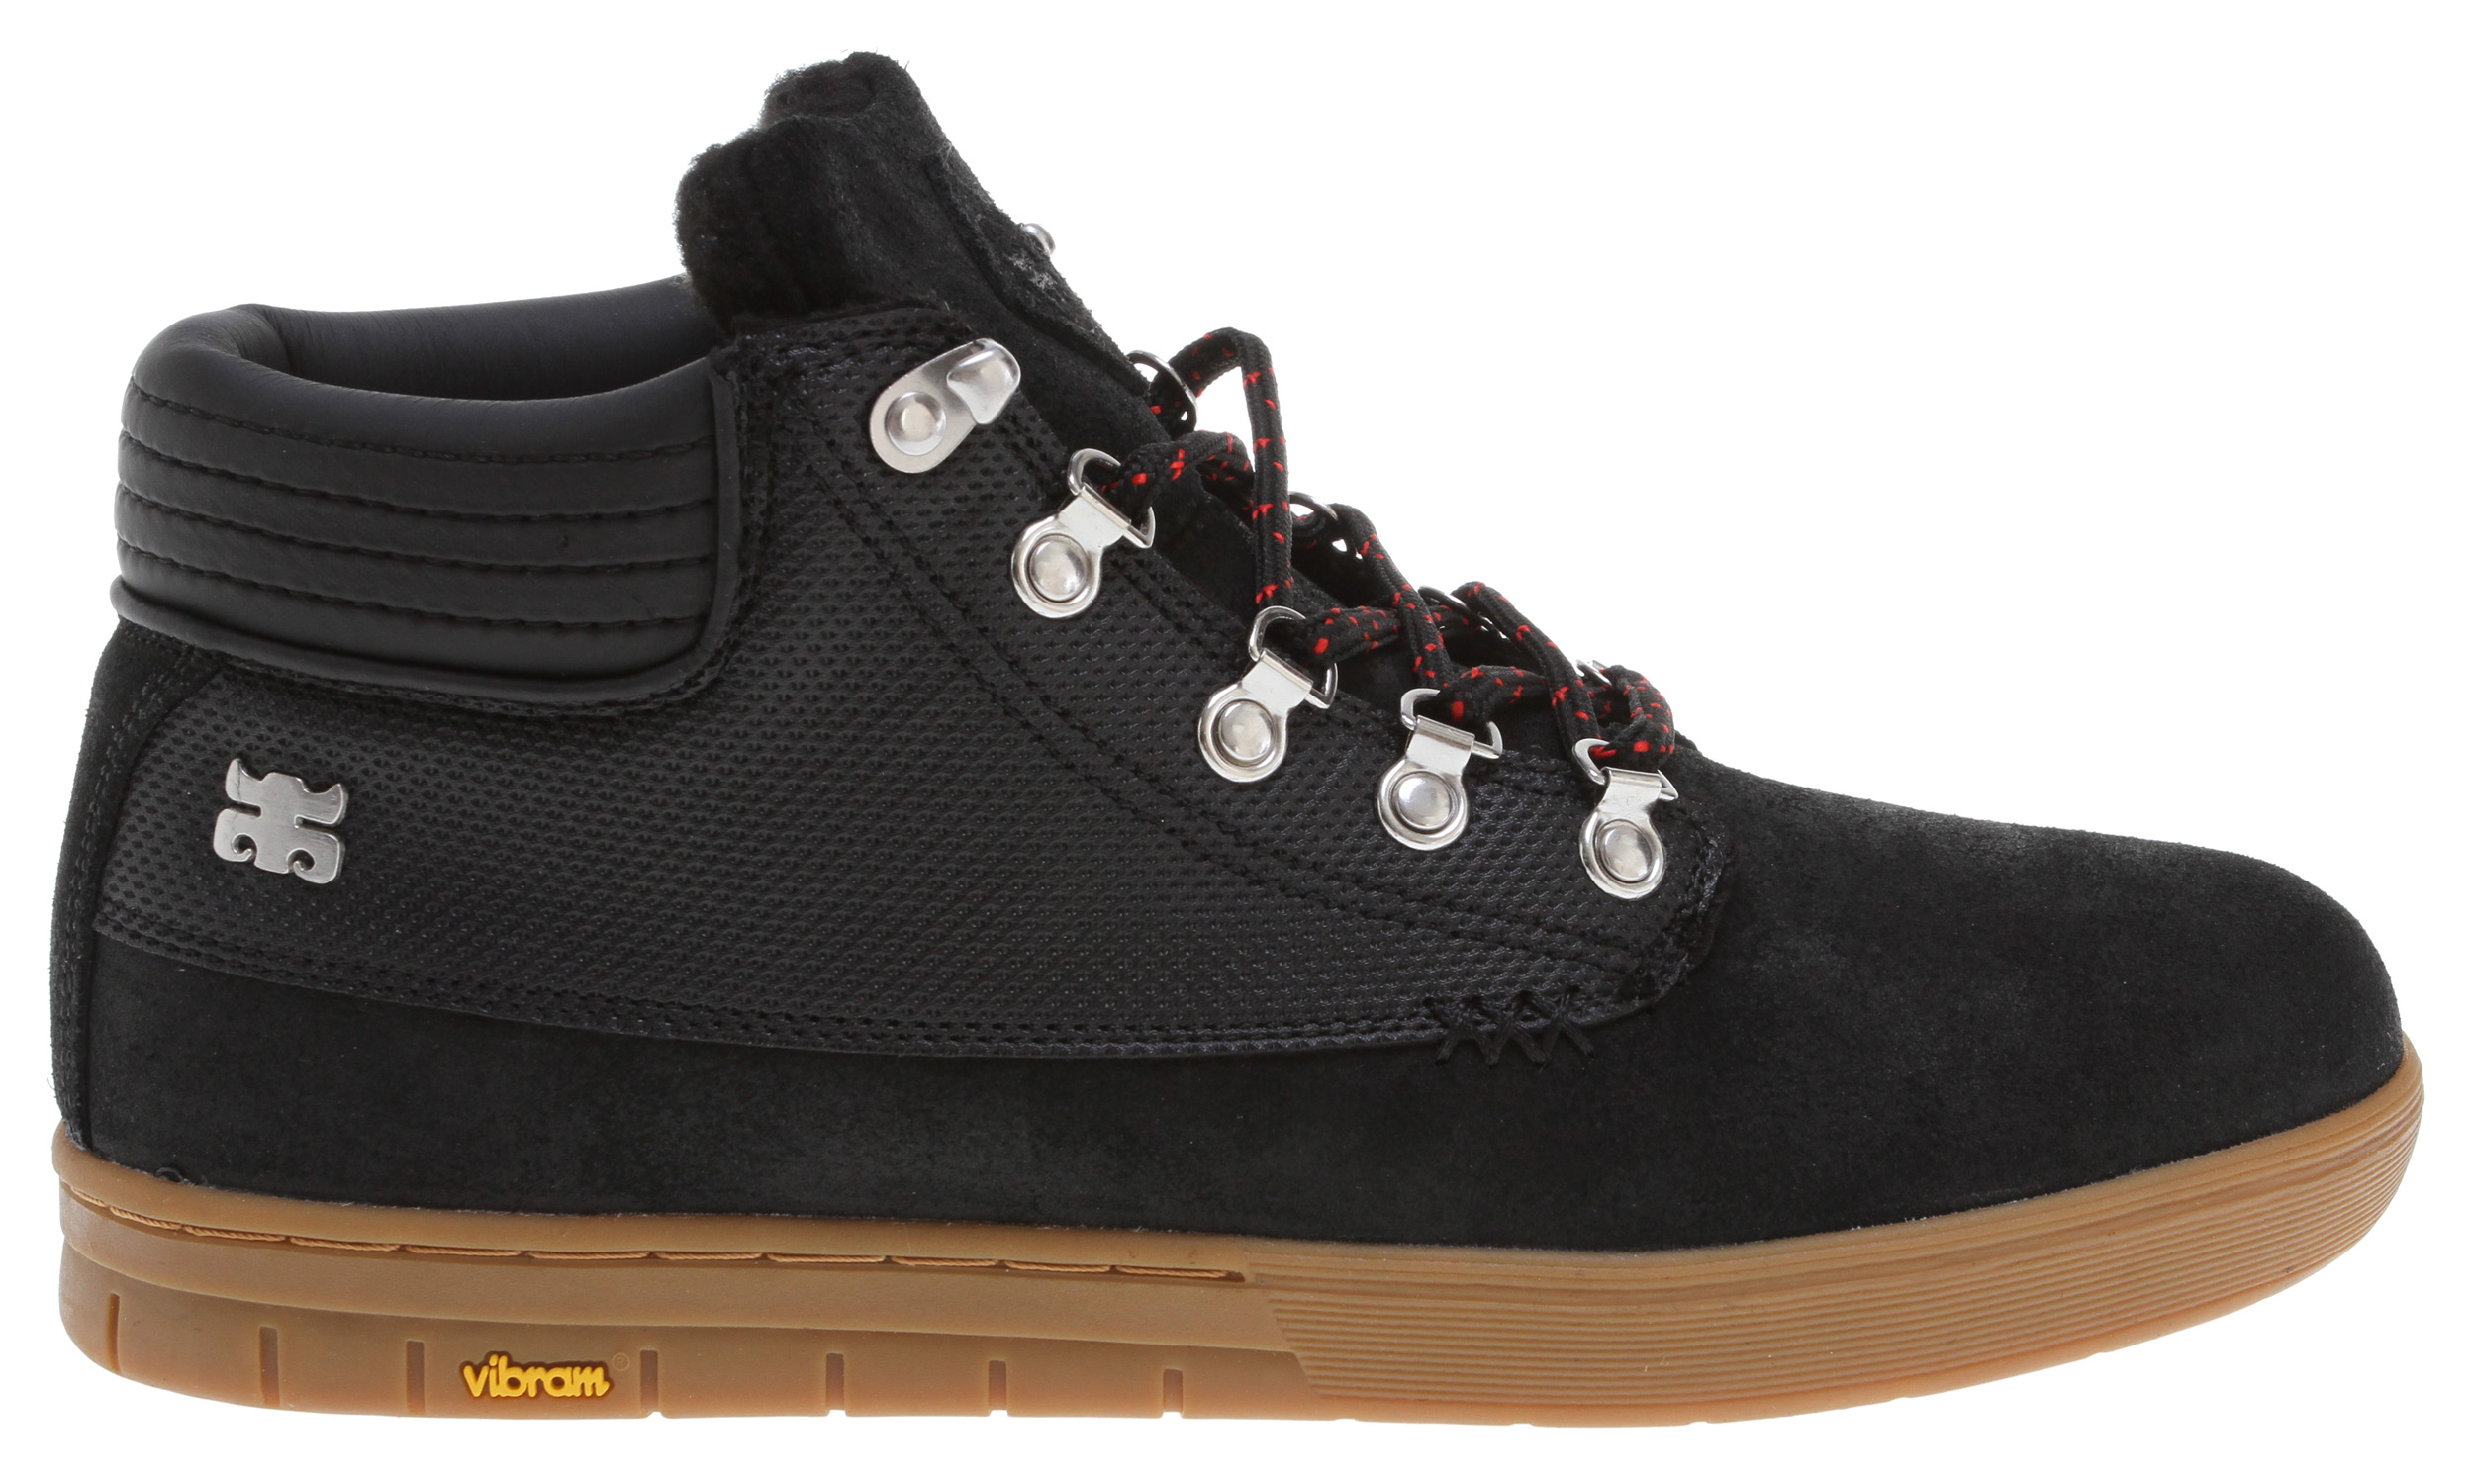 The Trenchtown is a new hybrid boot / shoe from IPATH featuring the Imprint outsole that was created exclusively for Ipath by Vibram.. With unique material and paneling details, the metal logo applique, and Vibram outsole, the Trenchtown is ready for the city streets in any weather. - $76.95